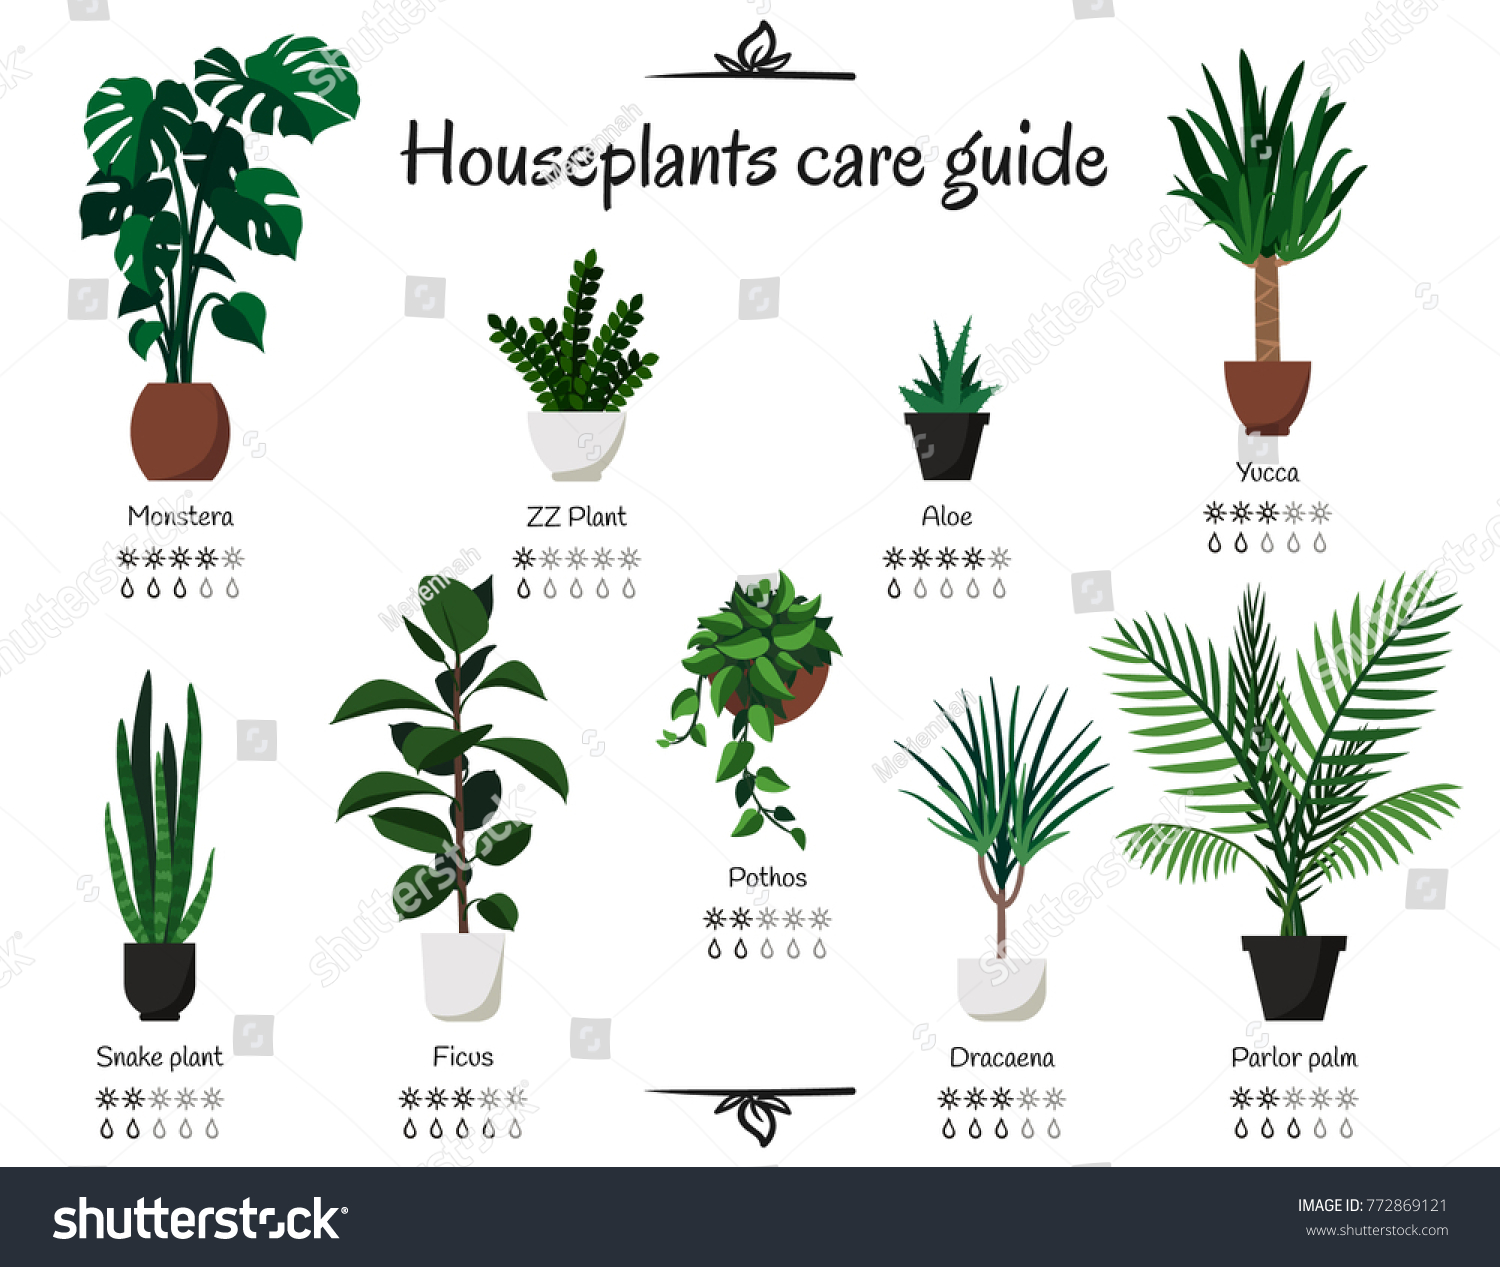 Indoor plant problem solver and care guide | about the garden magazine.